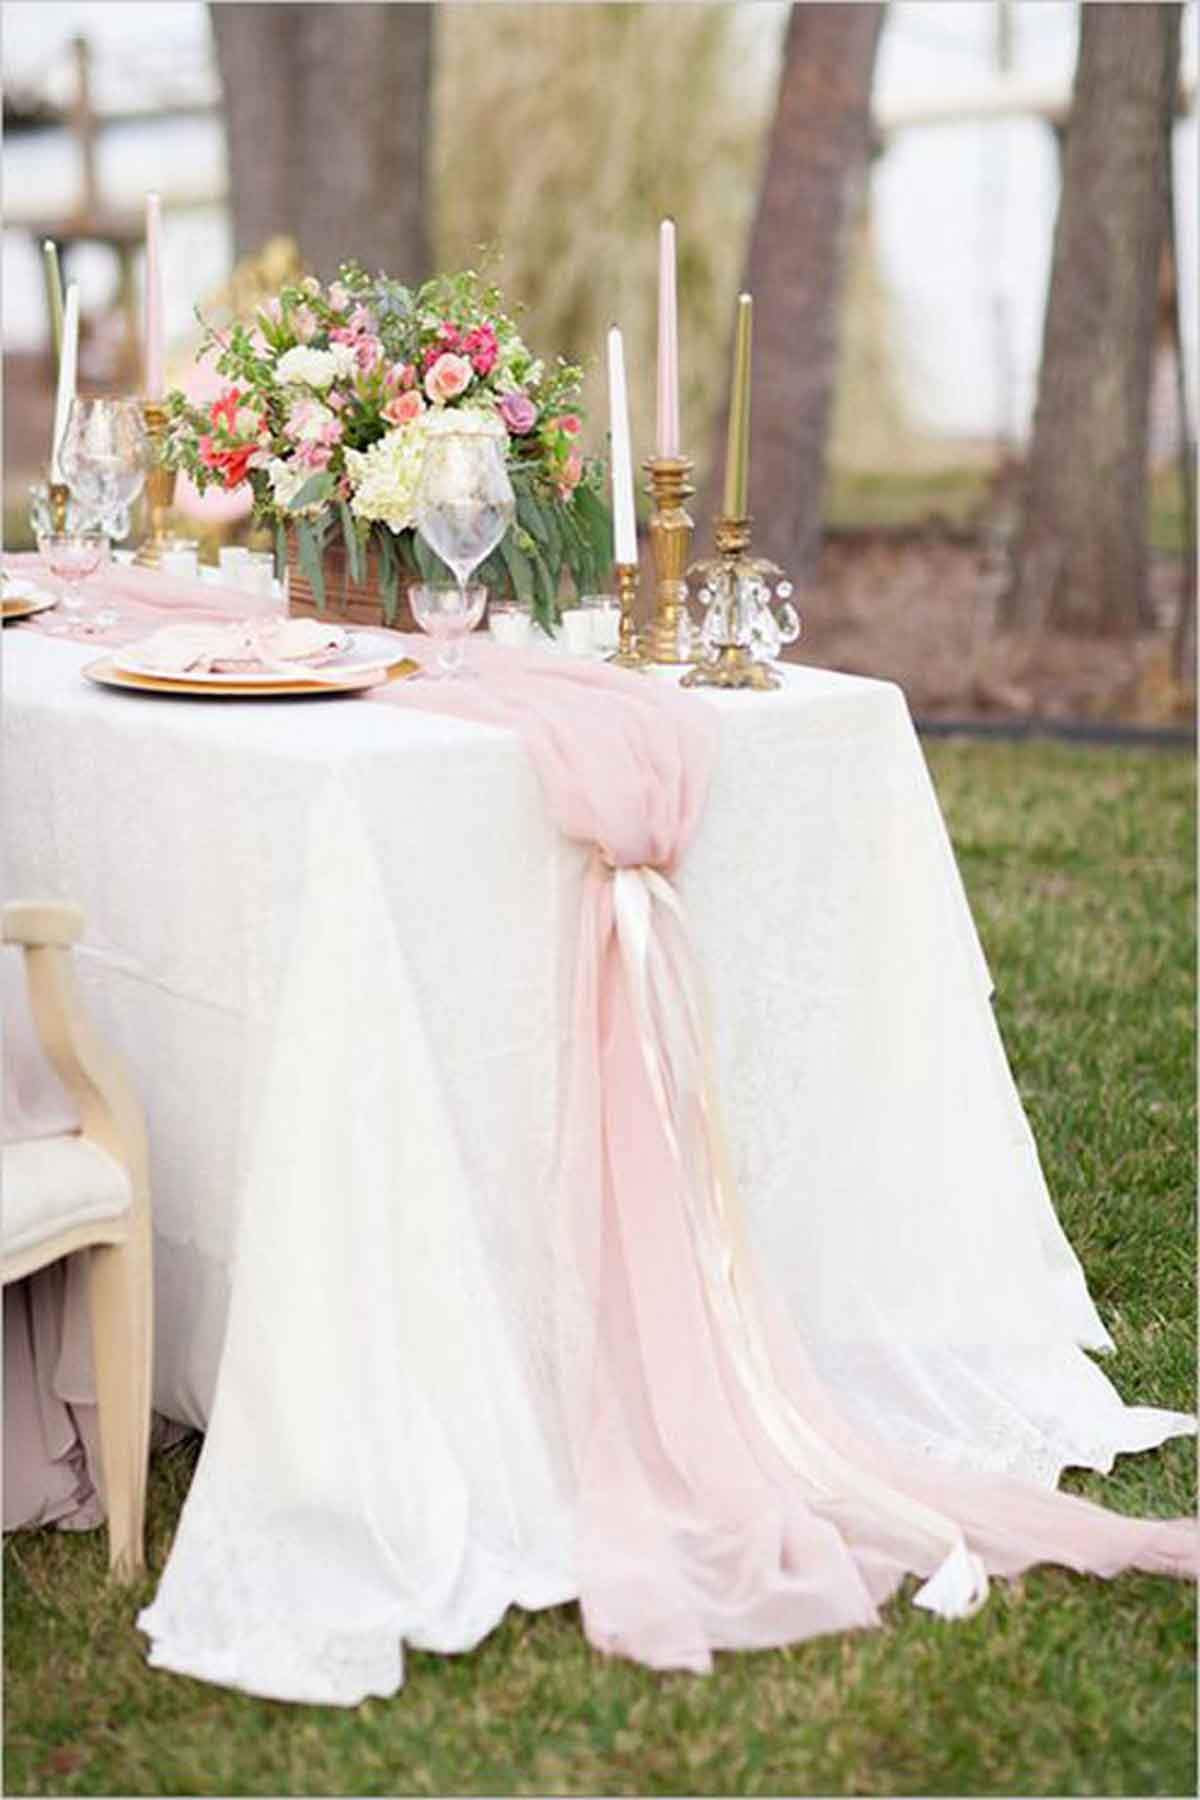 silk blush pink chiffon table runner wedding and bridal shower accent your focus tic decor arcadiadesigns tablerunner furniture sectional dining mats designs nautical pendant